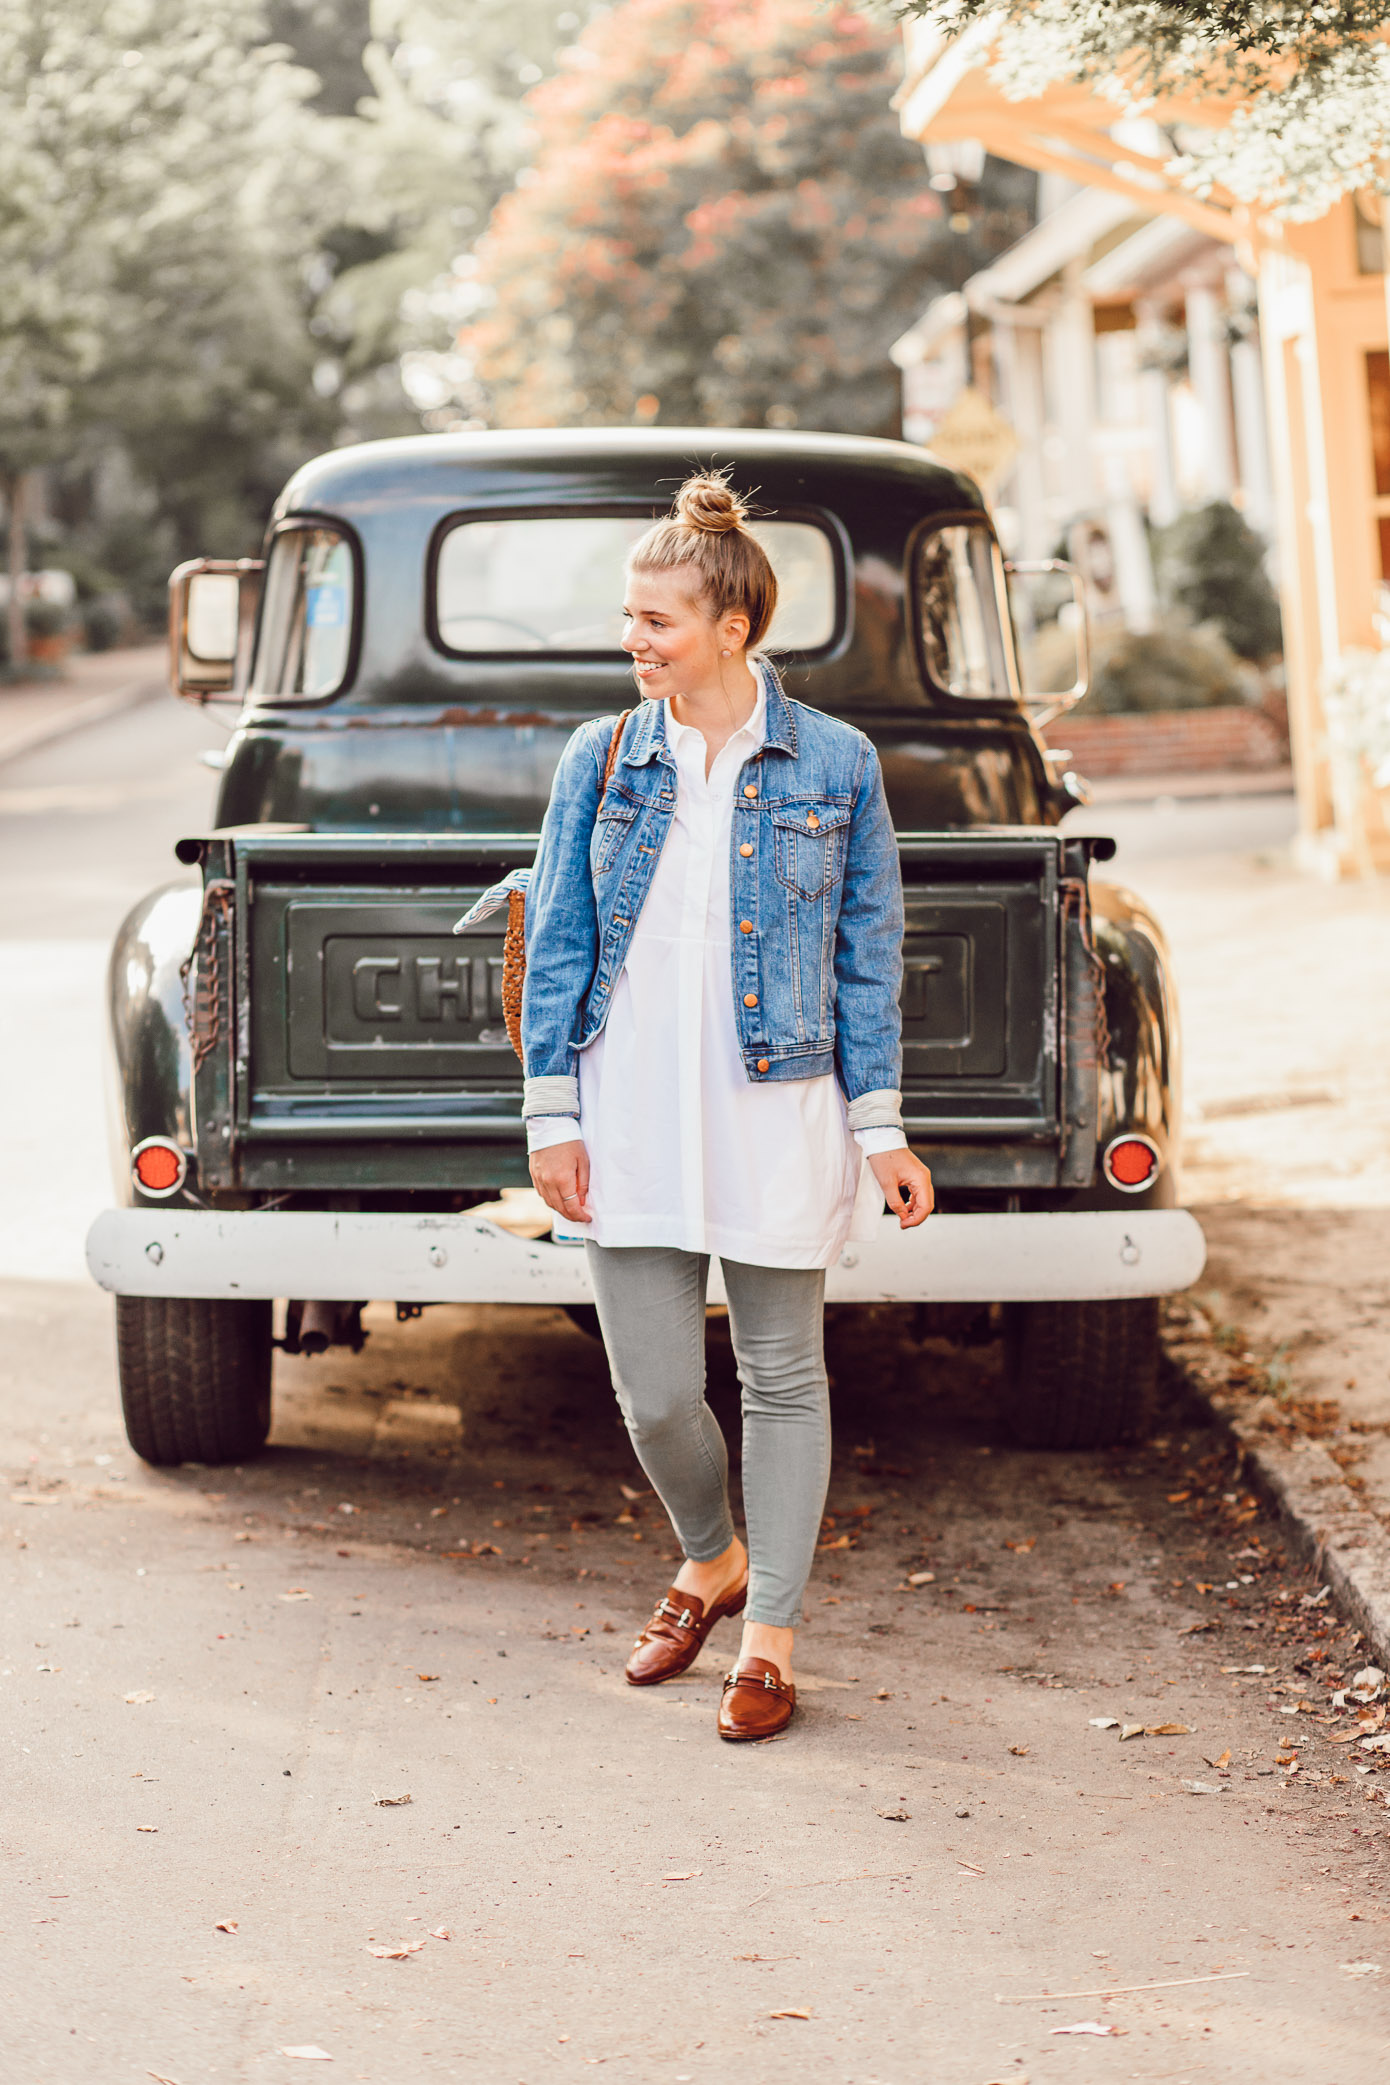 Styling Olive Green Jeans for Fall | 5 Ways to Get in the Fall Spirit featured on Louella Reese Life & Style Blog